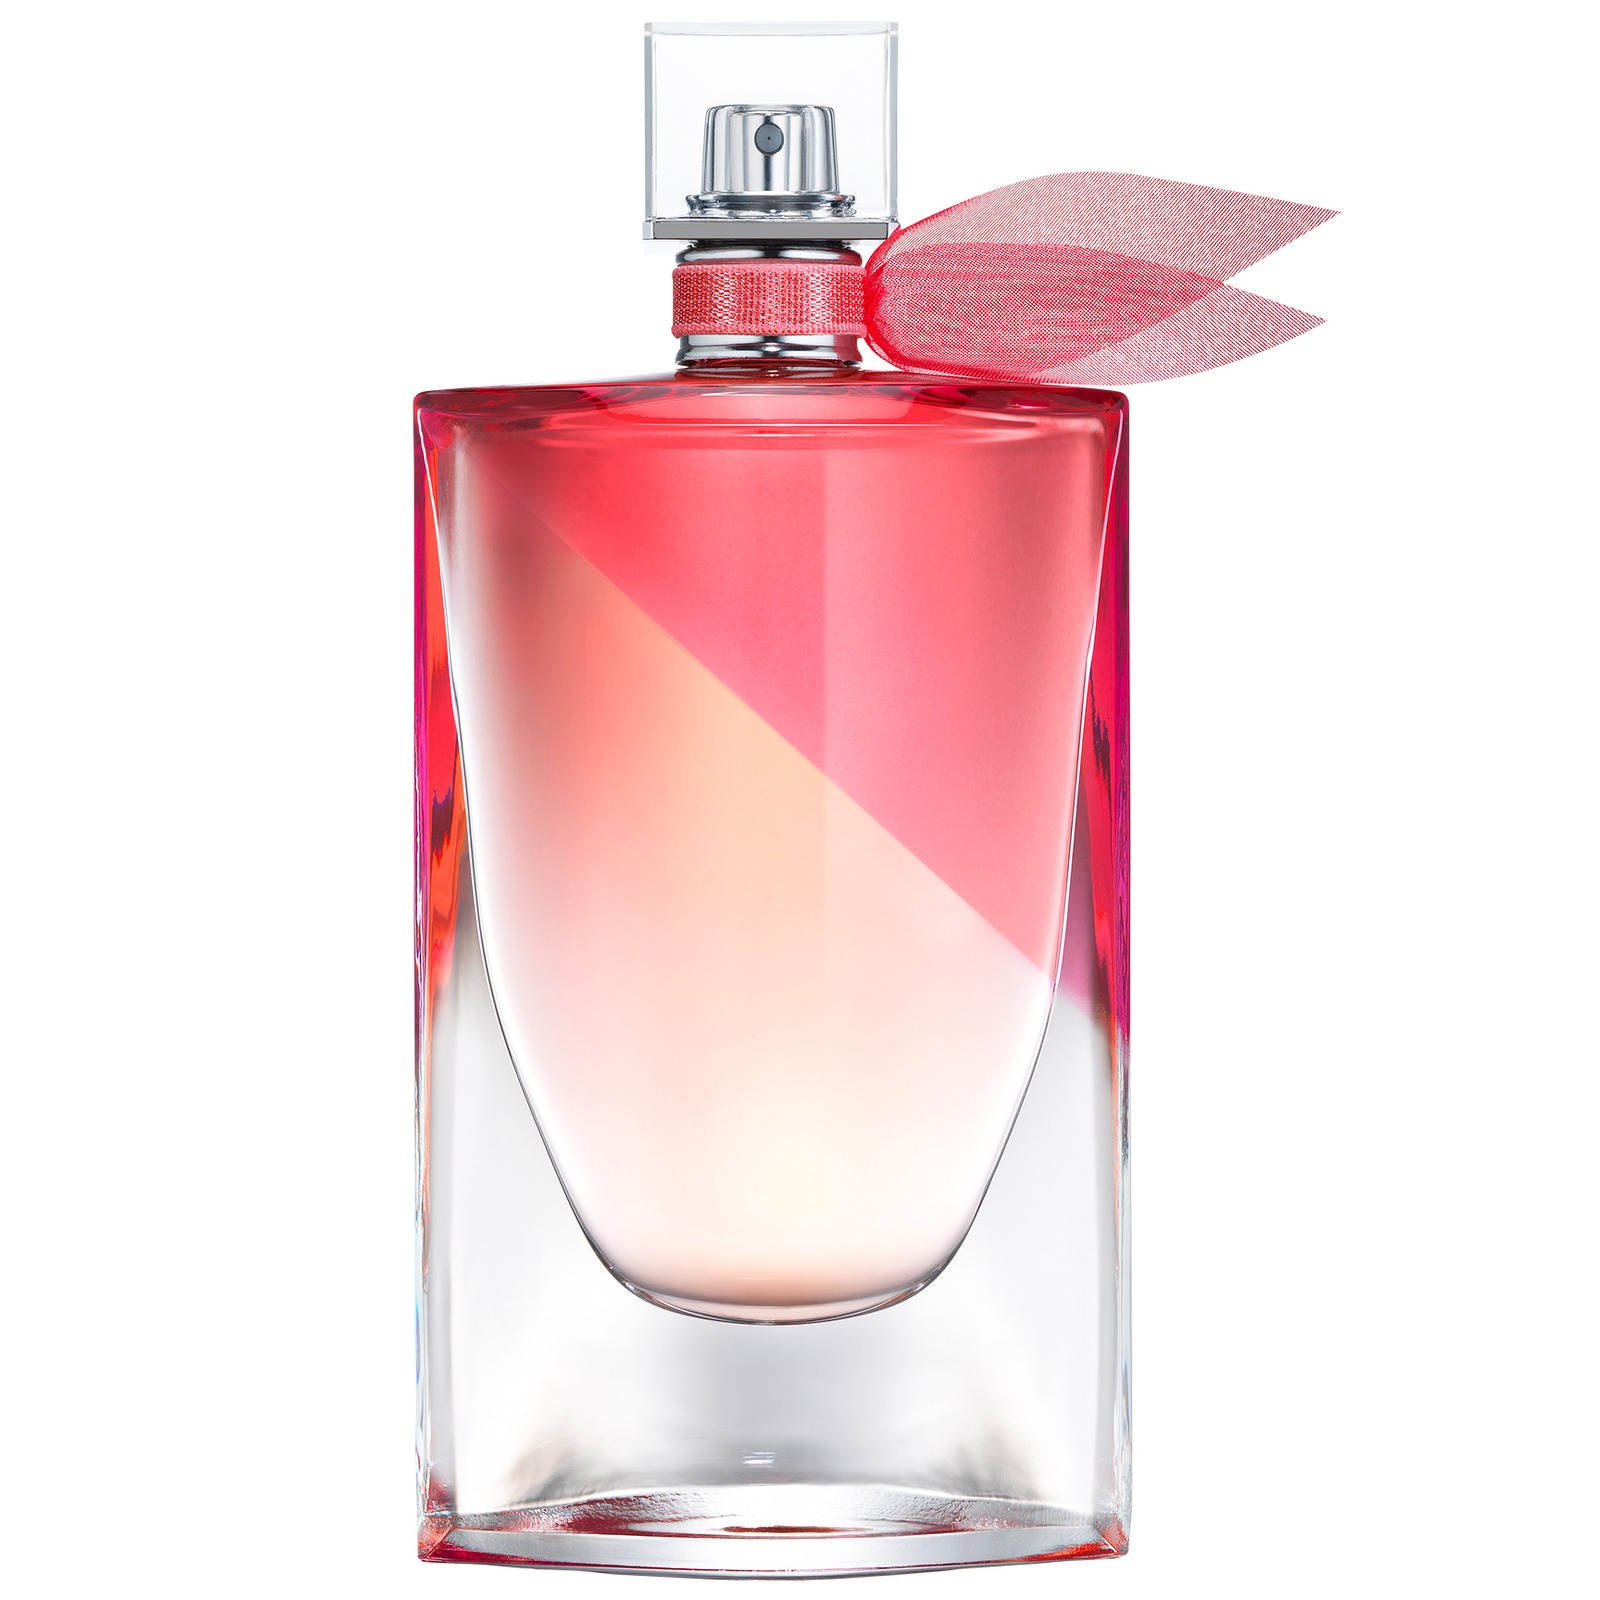 Lancome La Vie Est Belle With You edp 50ml Hitta bästa